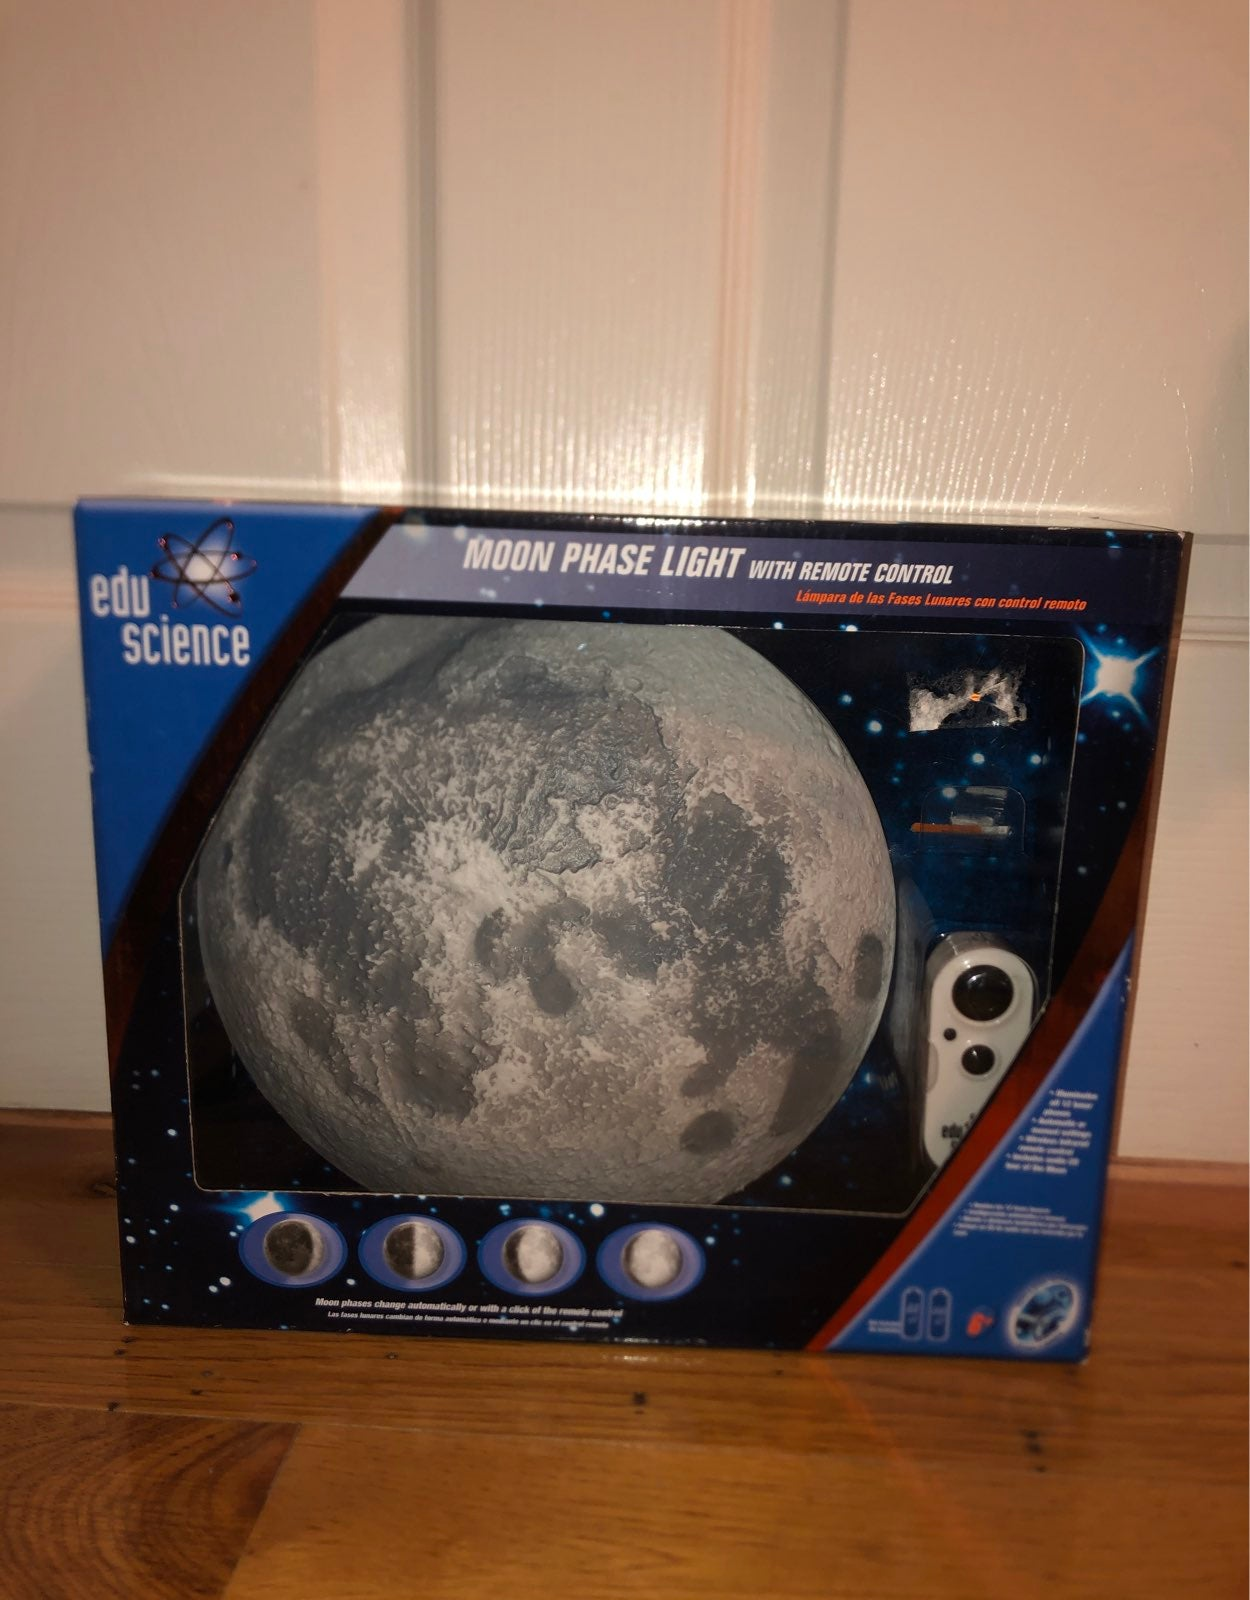 Moon Phase Light with Remote Control